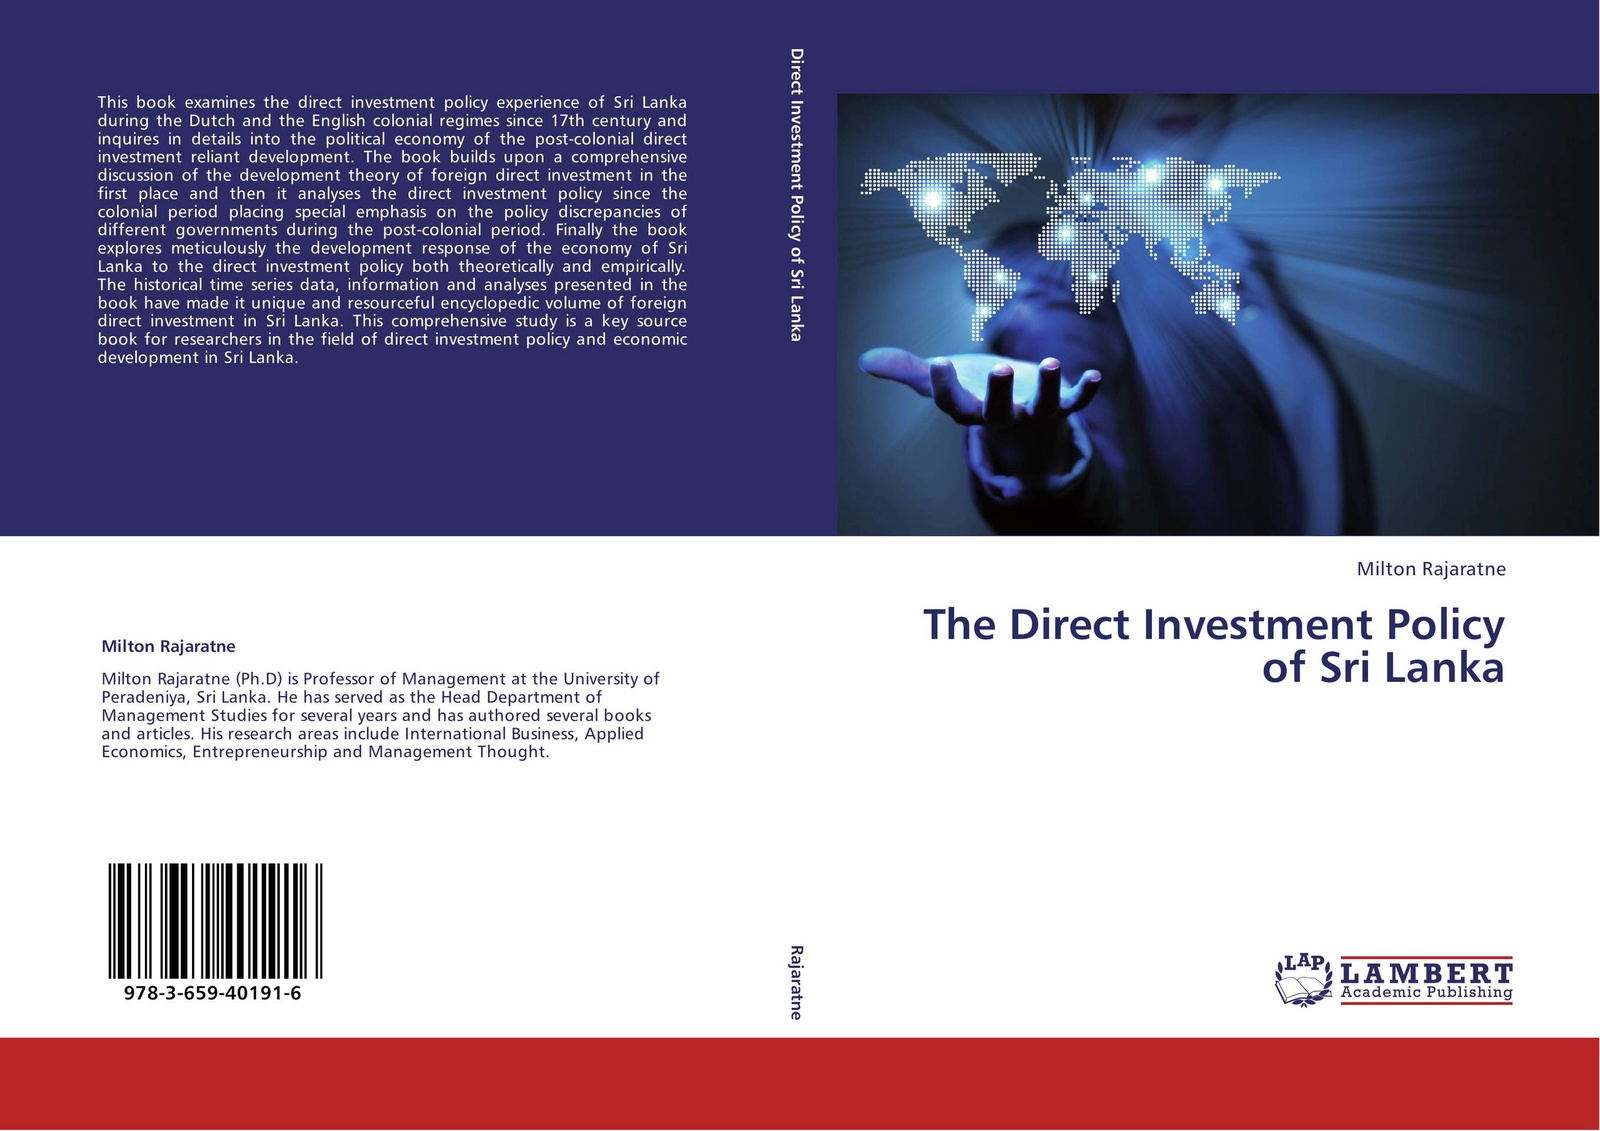 Milton Rajaratne The Direct Investment Policy of Sri Lanka andreas epperlein foreign direct investment in ireland under consideration of the financial services sector in particular